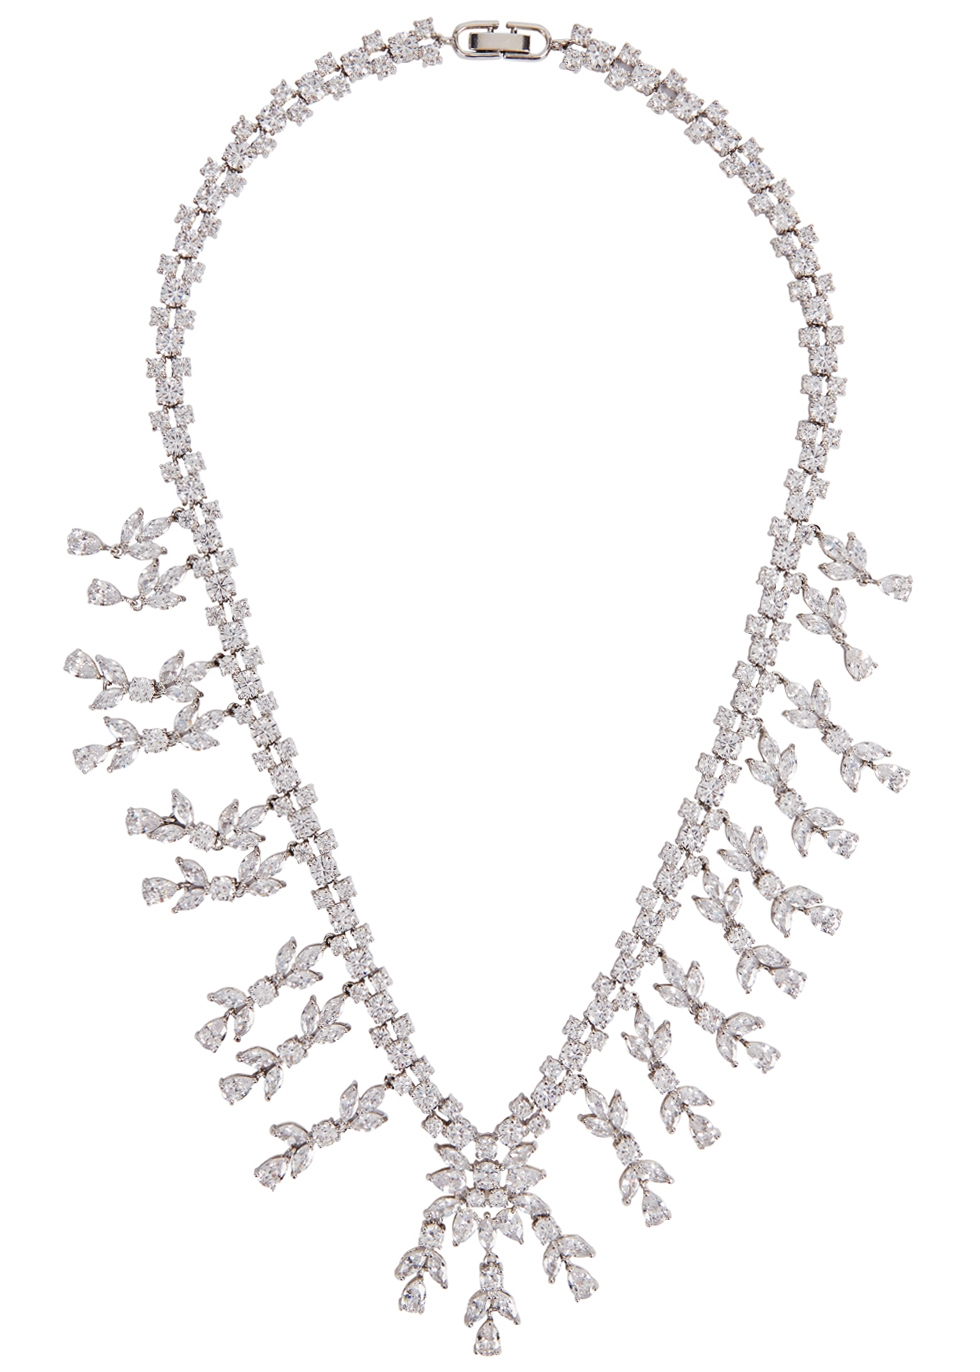 FALLON MONARCH WEEPING FERN NECKLACE